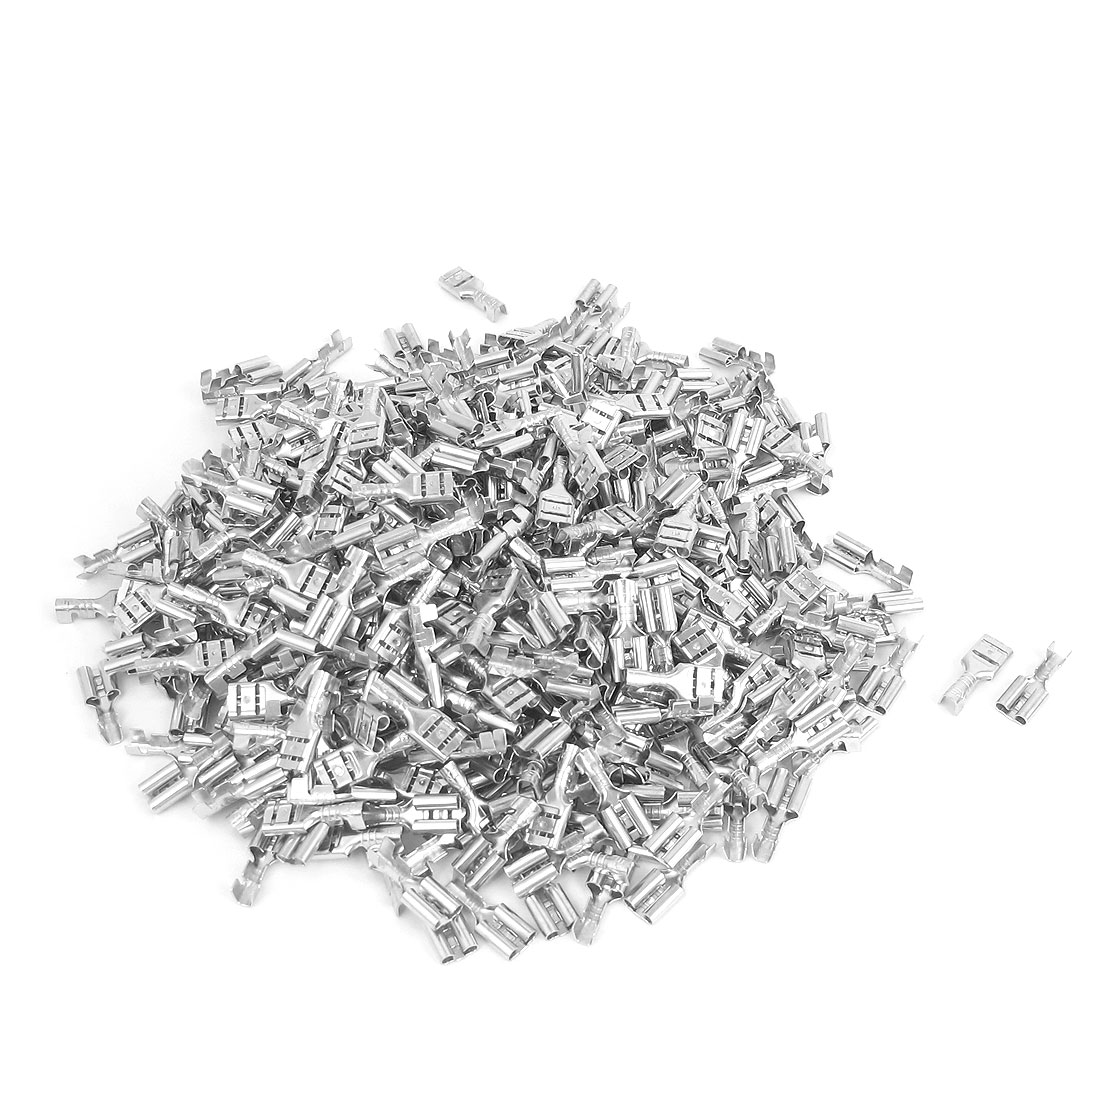 1000pcs Silver Tone Metal Female Spade Crimp Terminals Electrical Wire Connector 4.8mm